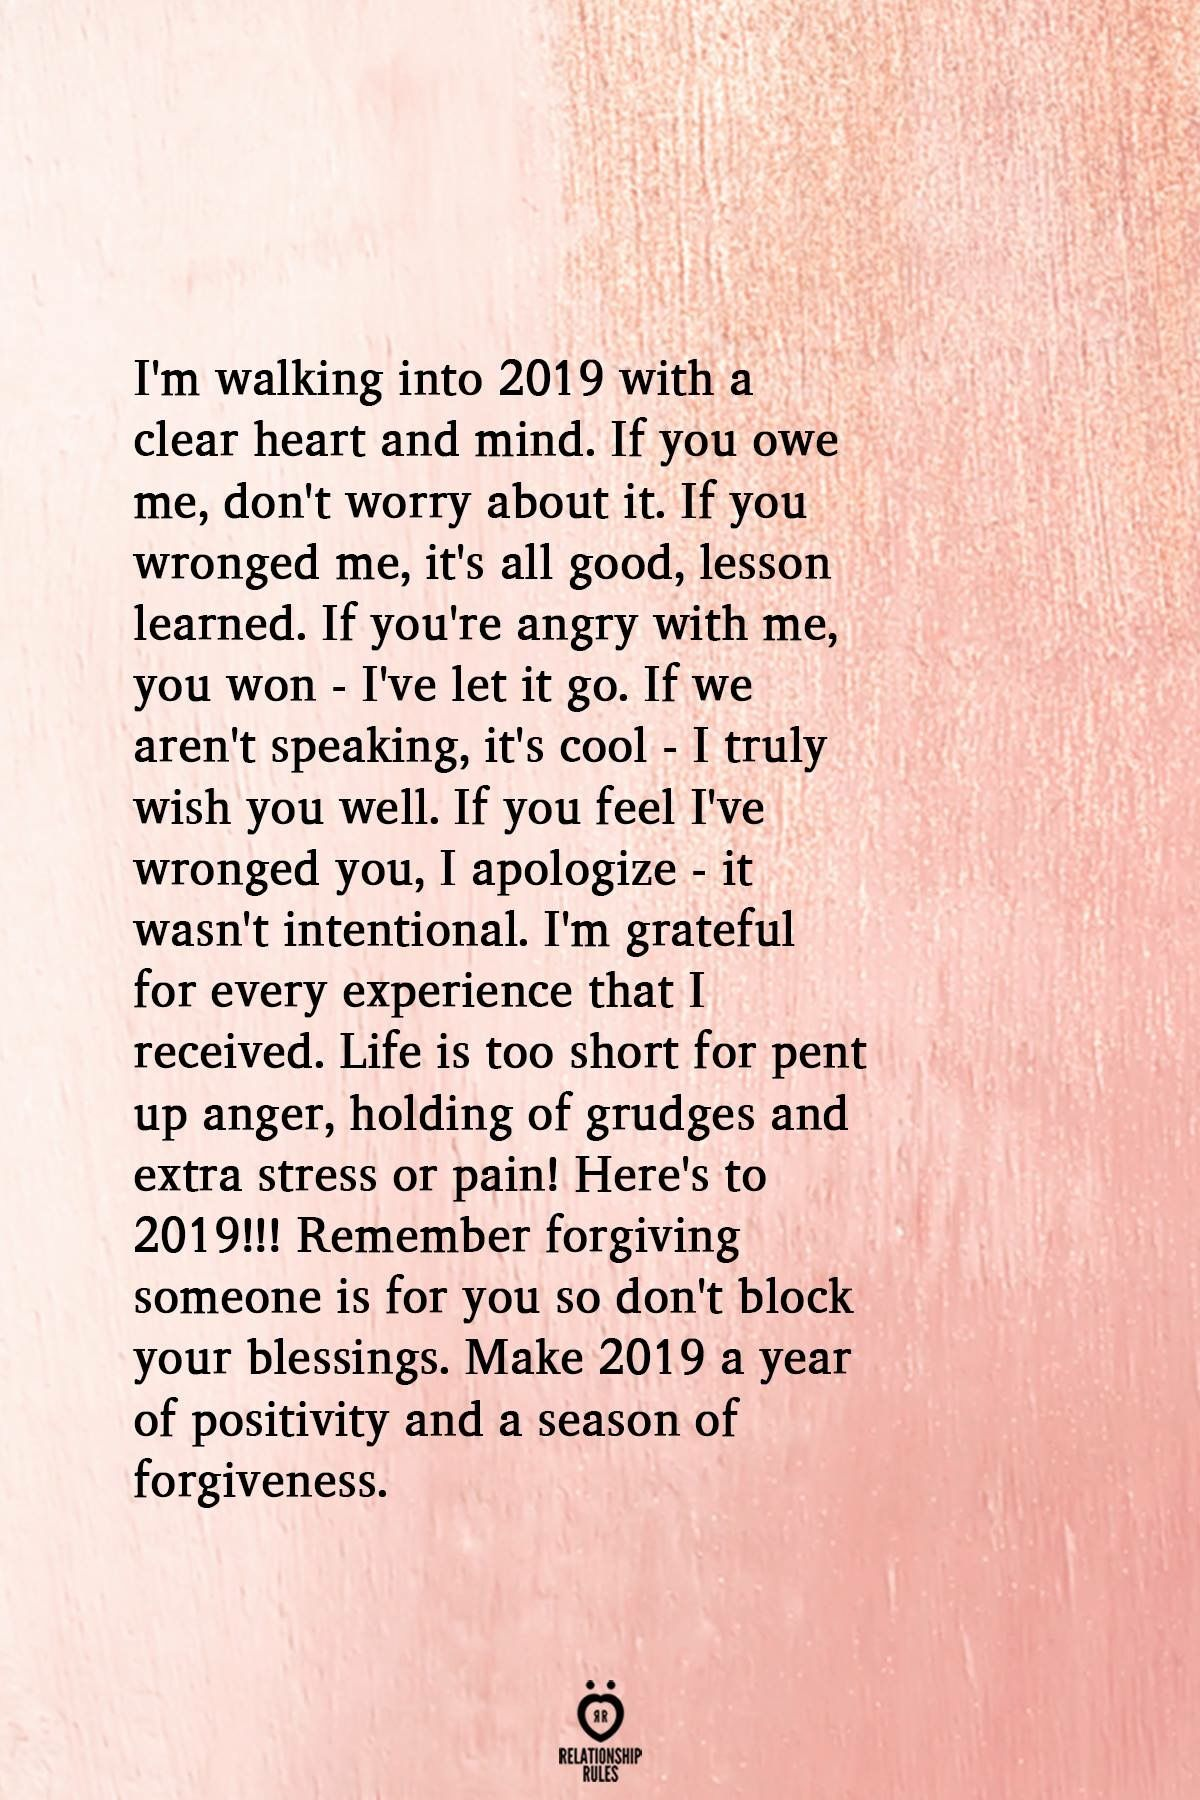 Pin By Vienne Telgt On 2019 Quotes About Moving On Inspirational Quotes Motivation Quotes